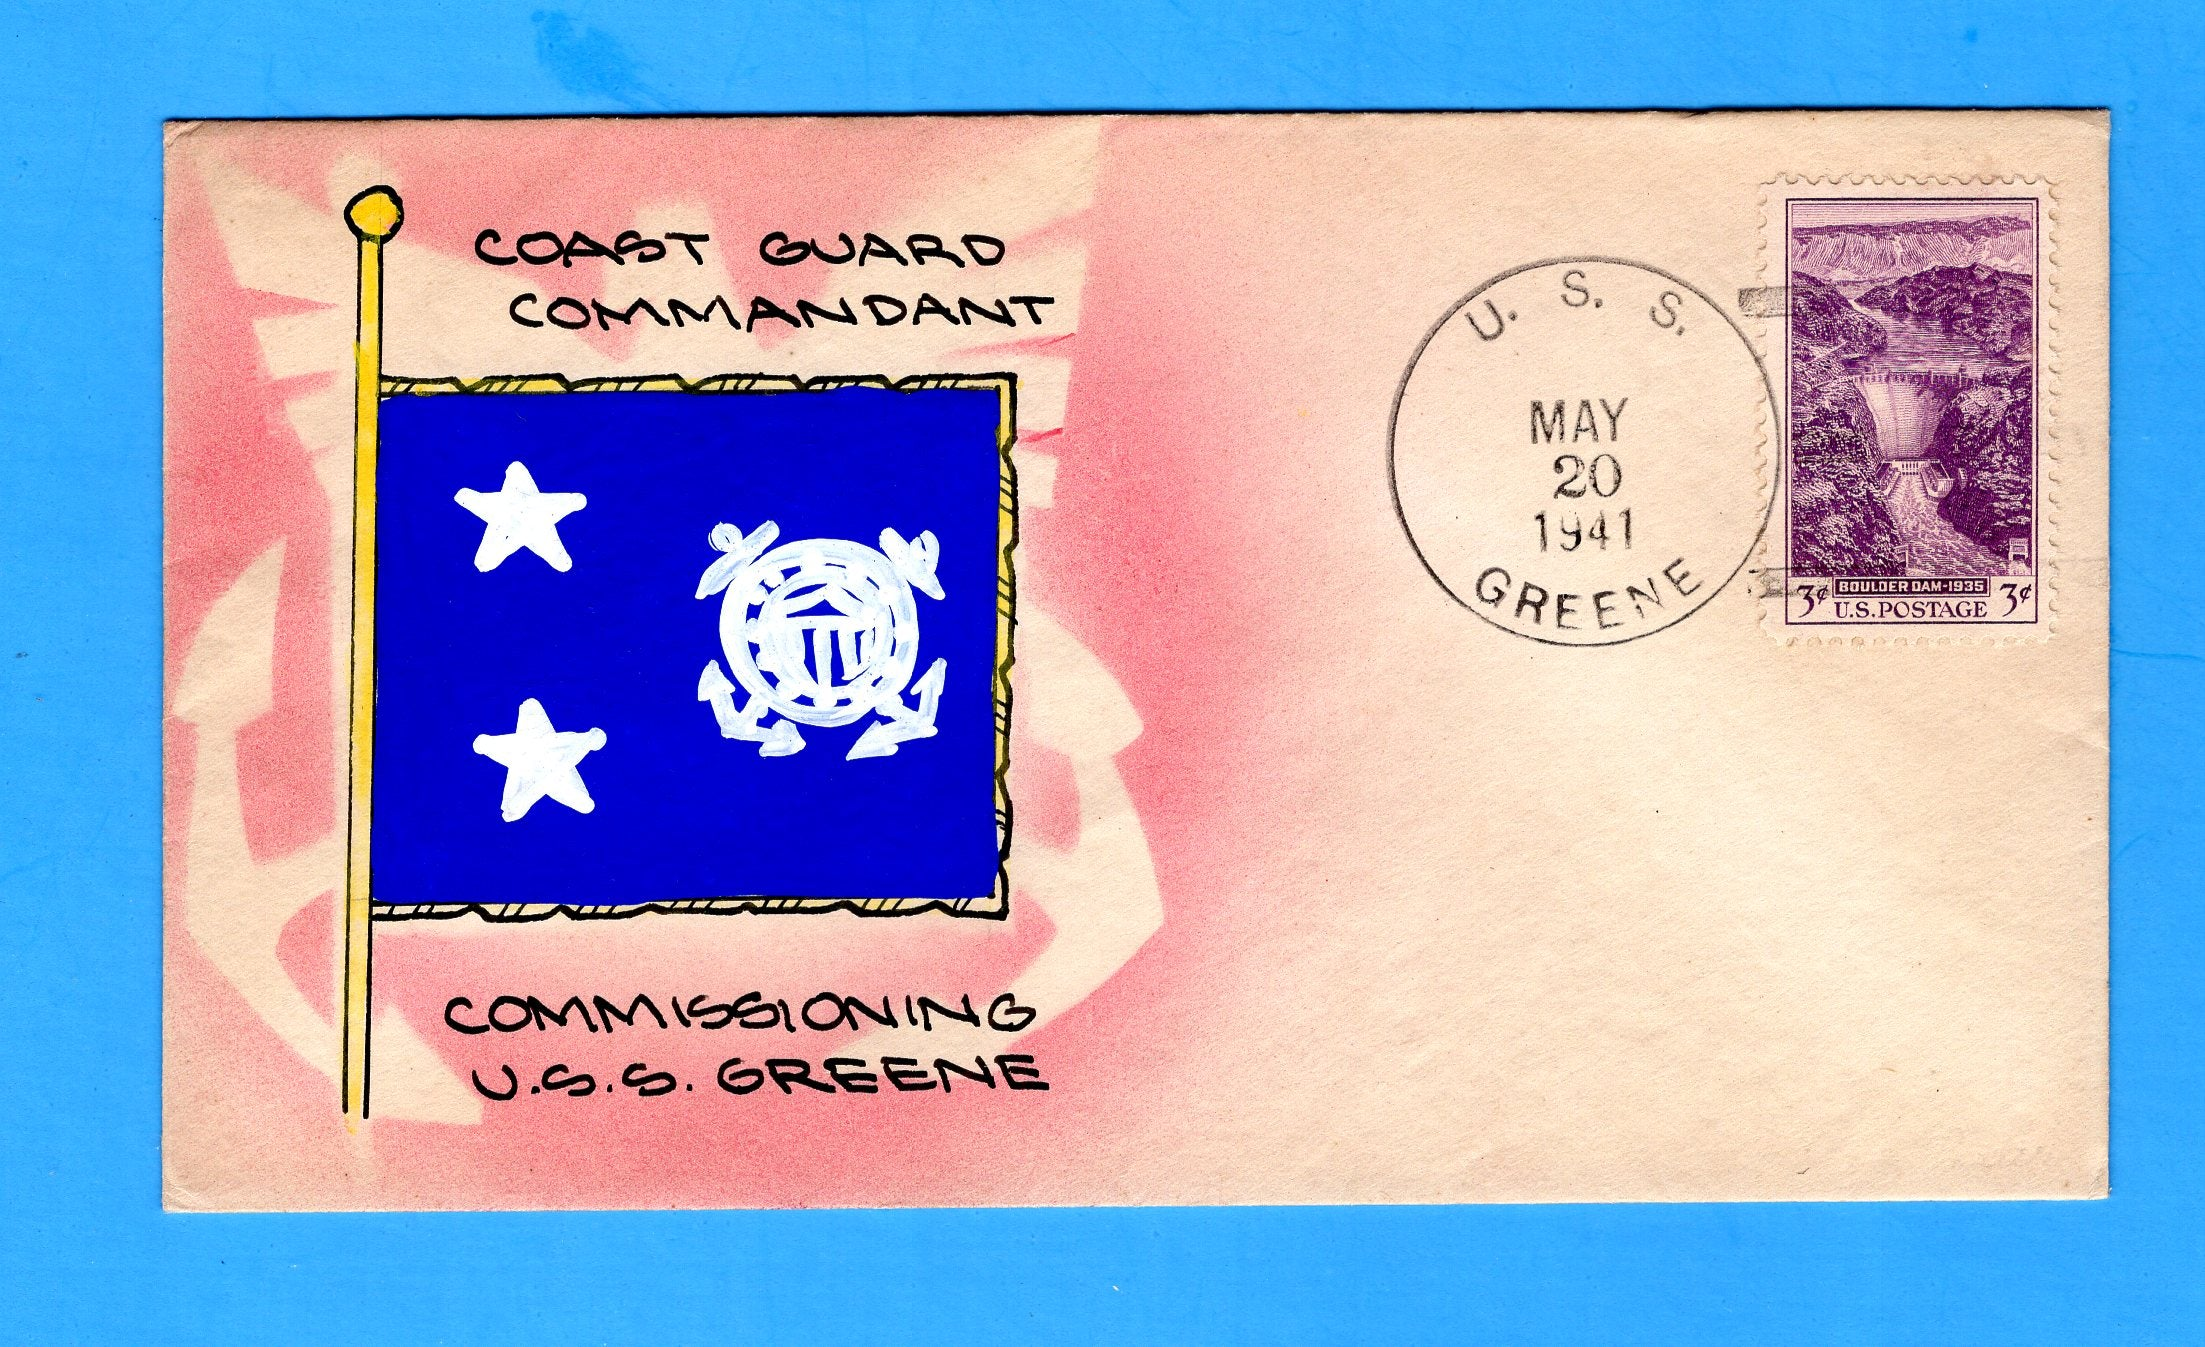 USS Greene APD-36 First Day Postal Service May 20, 1941 - Mae Weigand Hand Painted Cachet